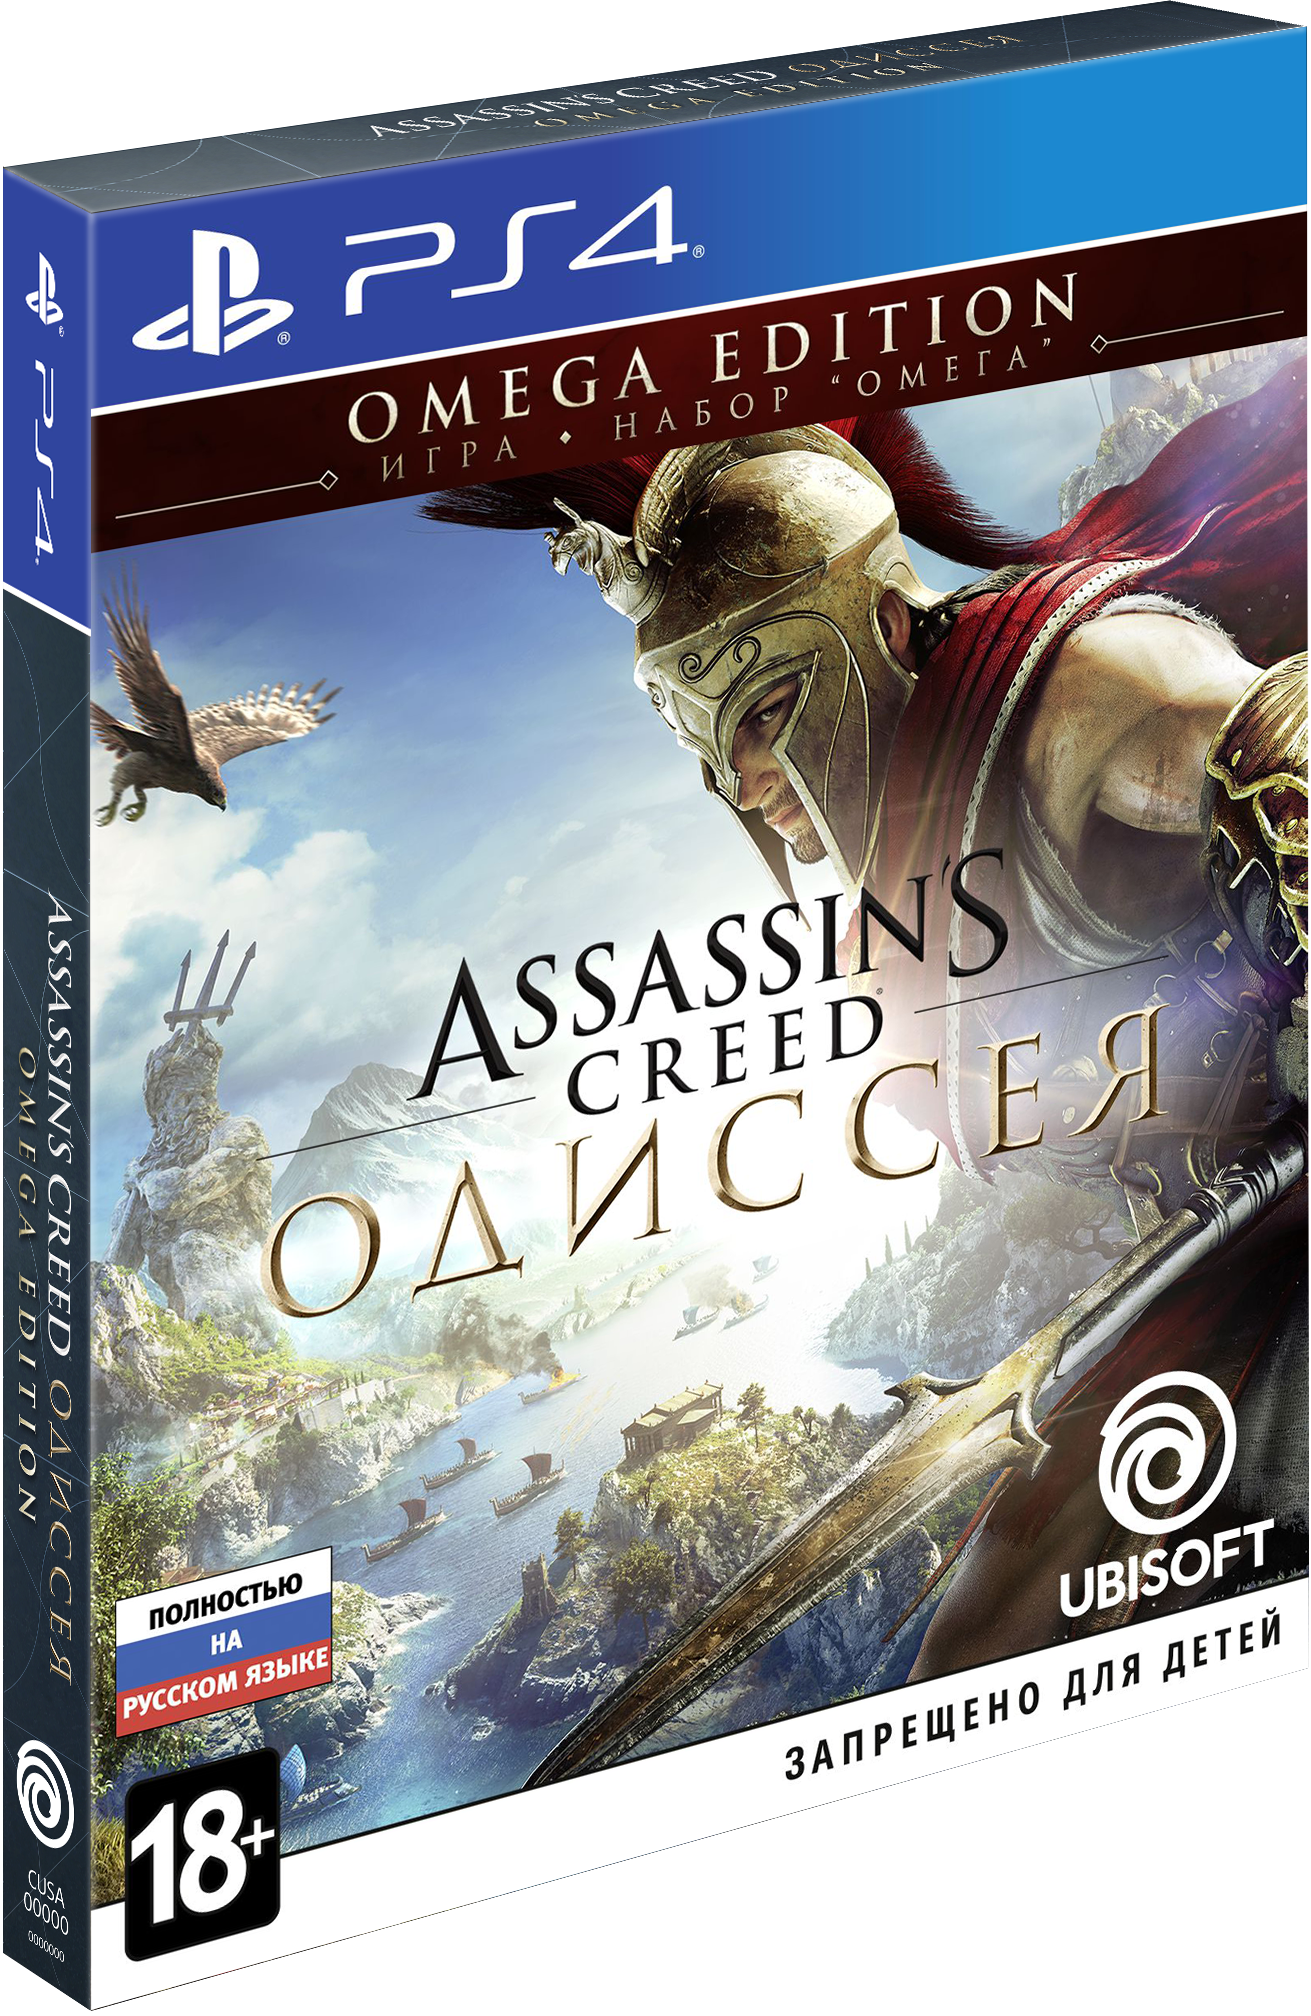 Купить со скидкой Assassin's Creed: Одиссея. Omega Edition [PS4]